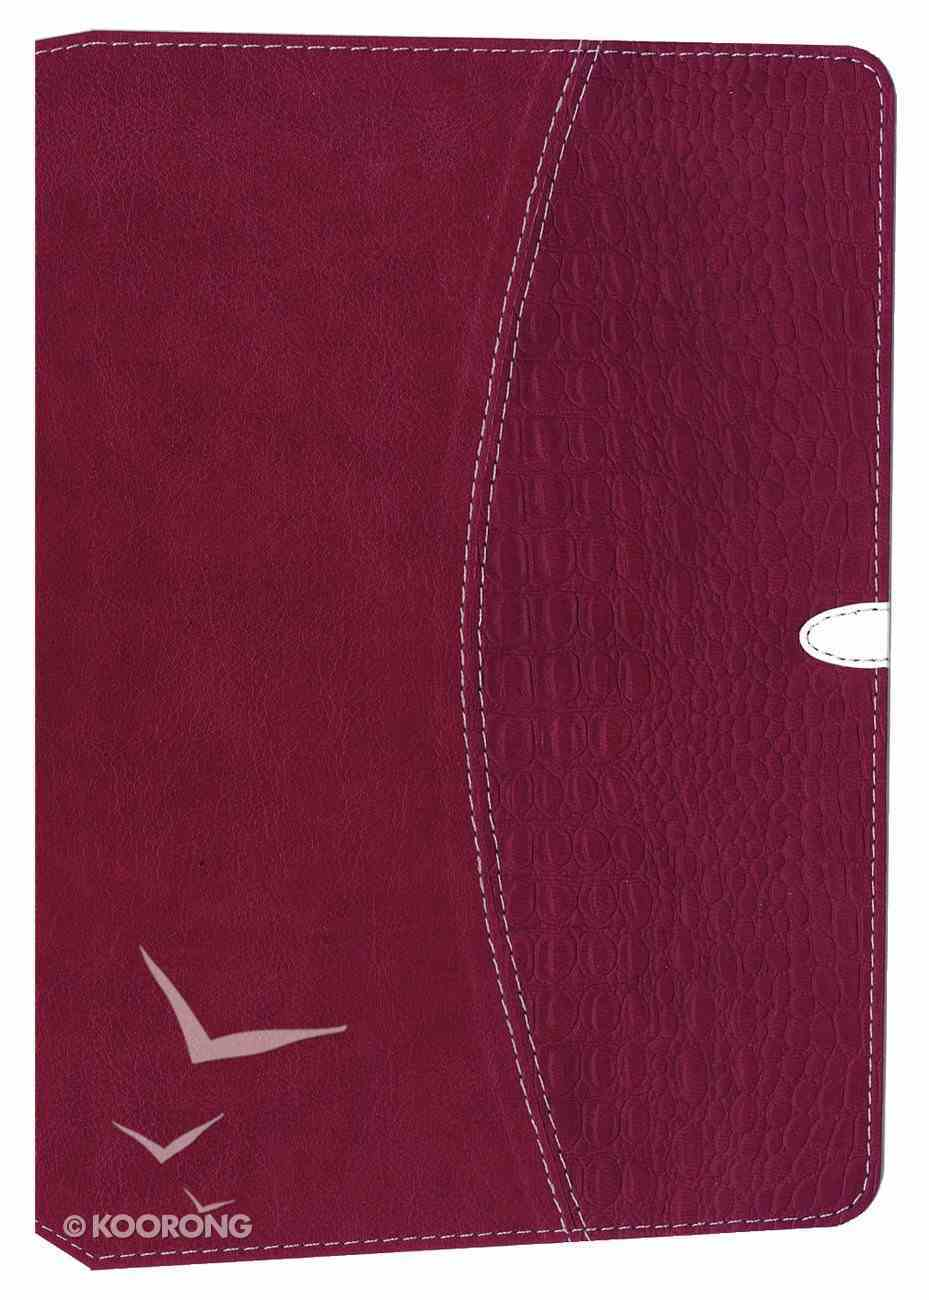 NIV Thinline Bible Razzleberry Duo-Tone (Red Letter Edition) Imitation Leather